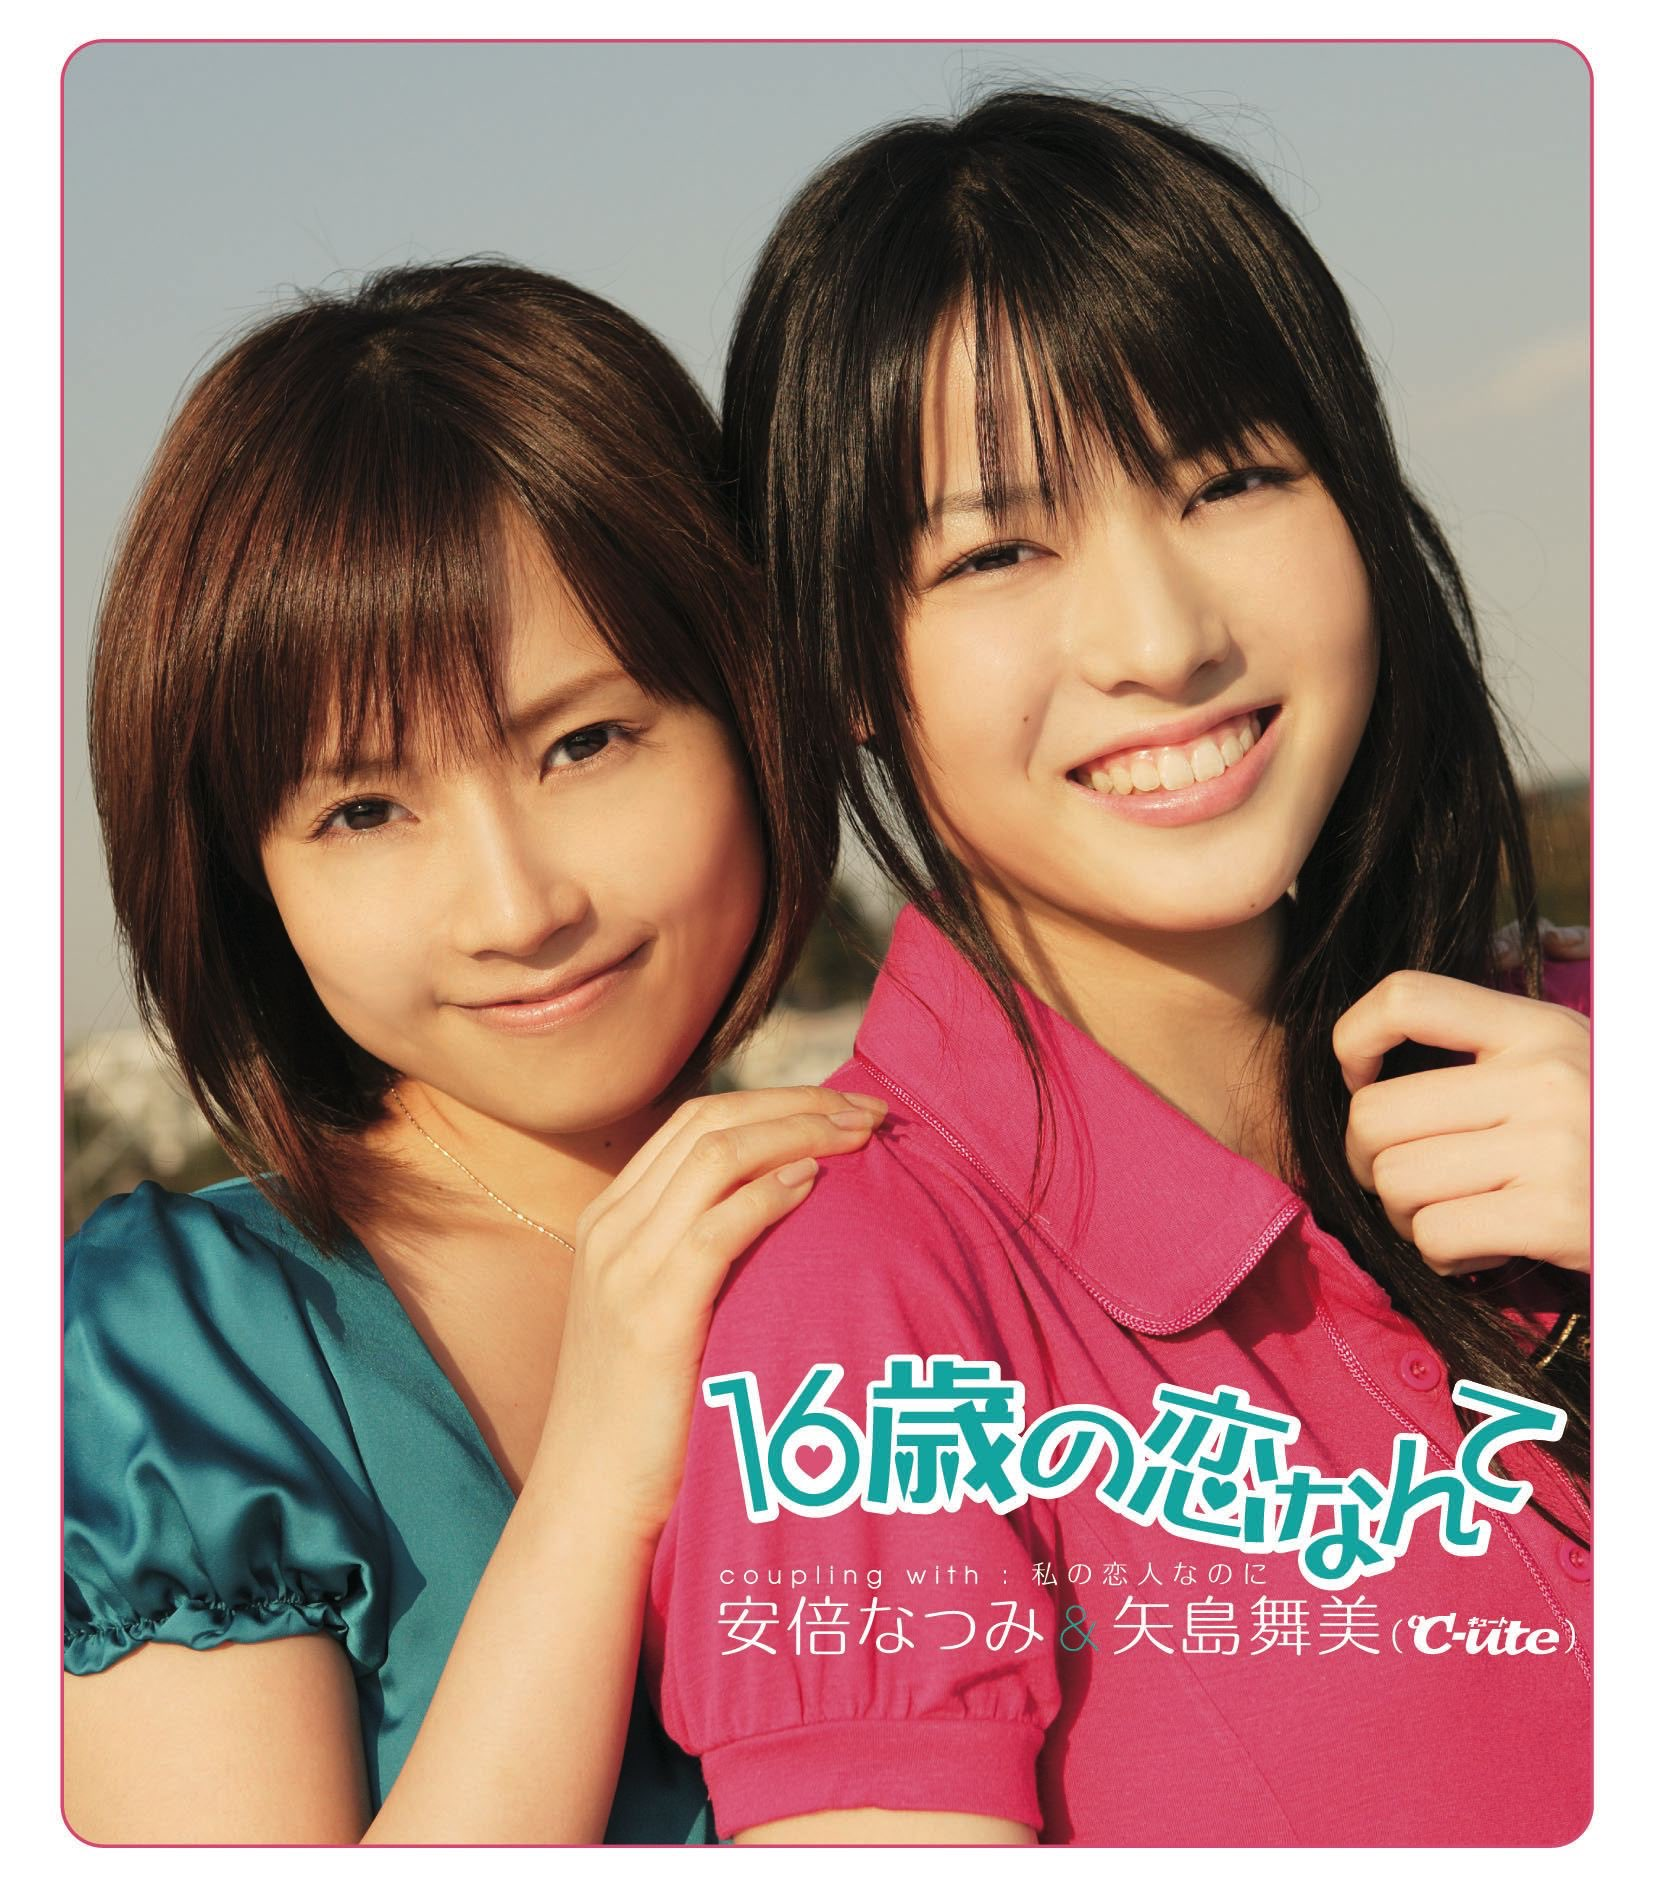 Regular Edition CD Cover